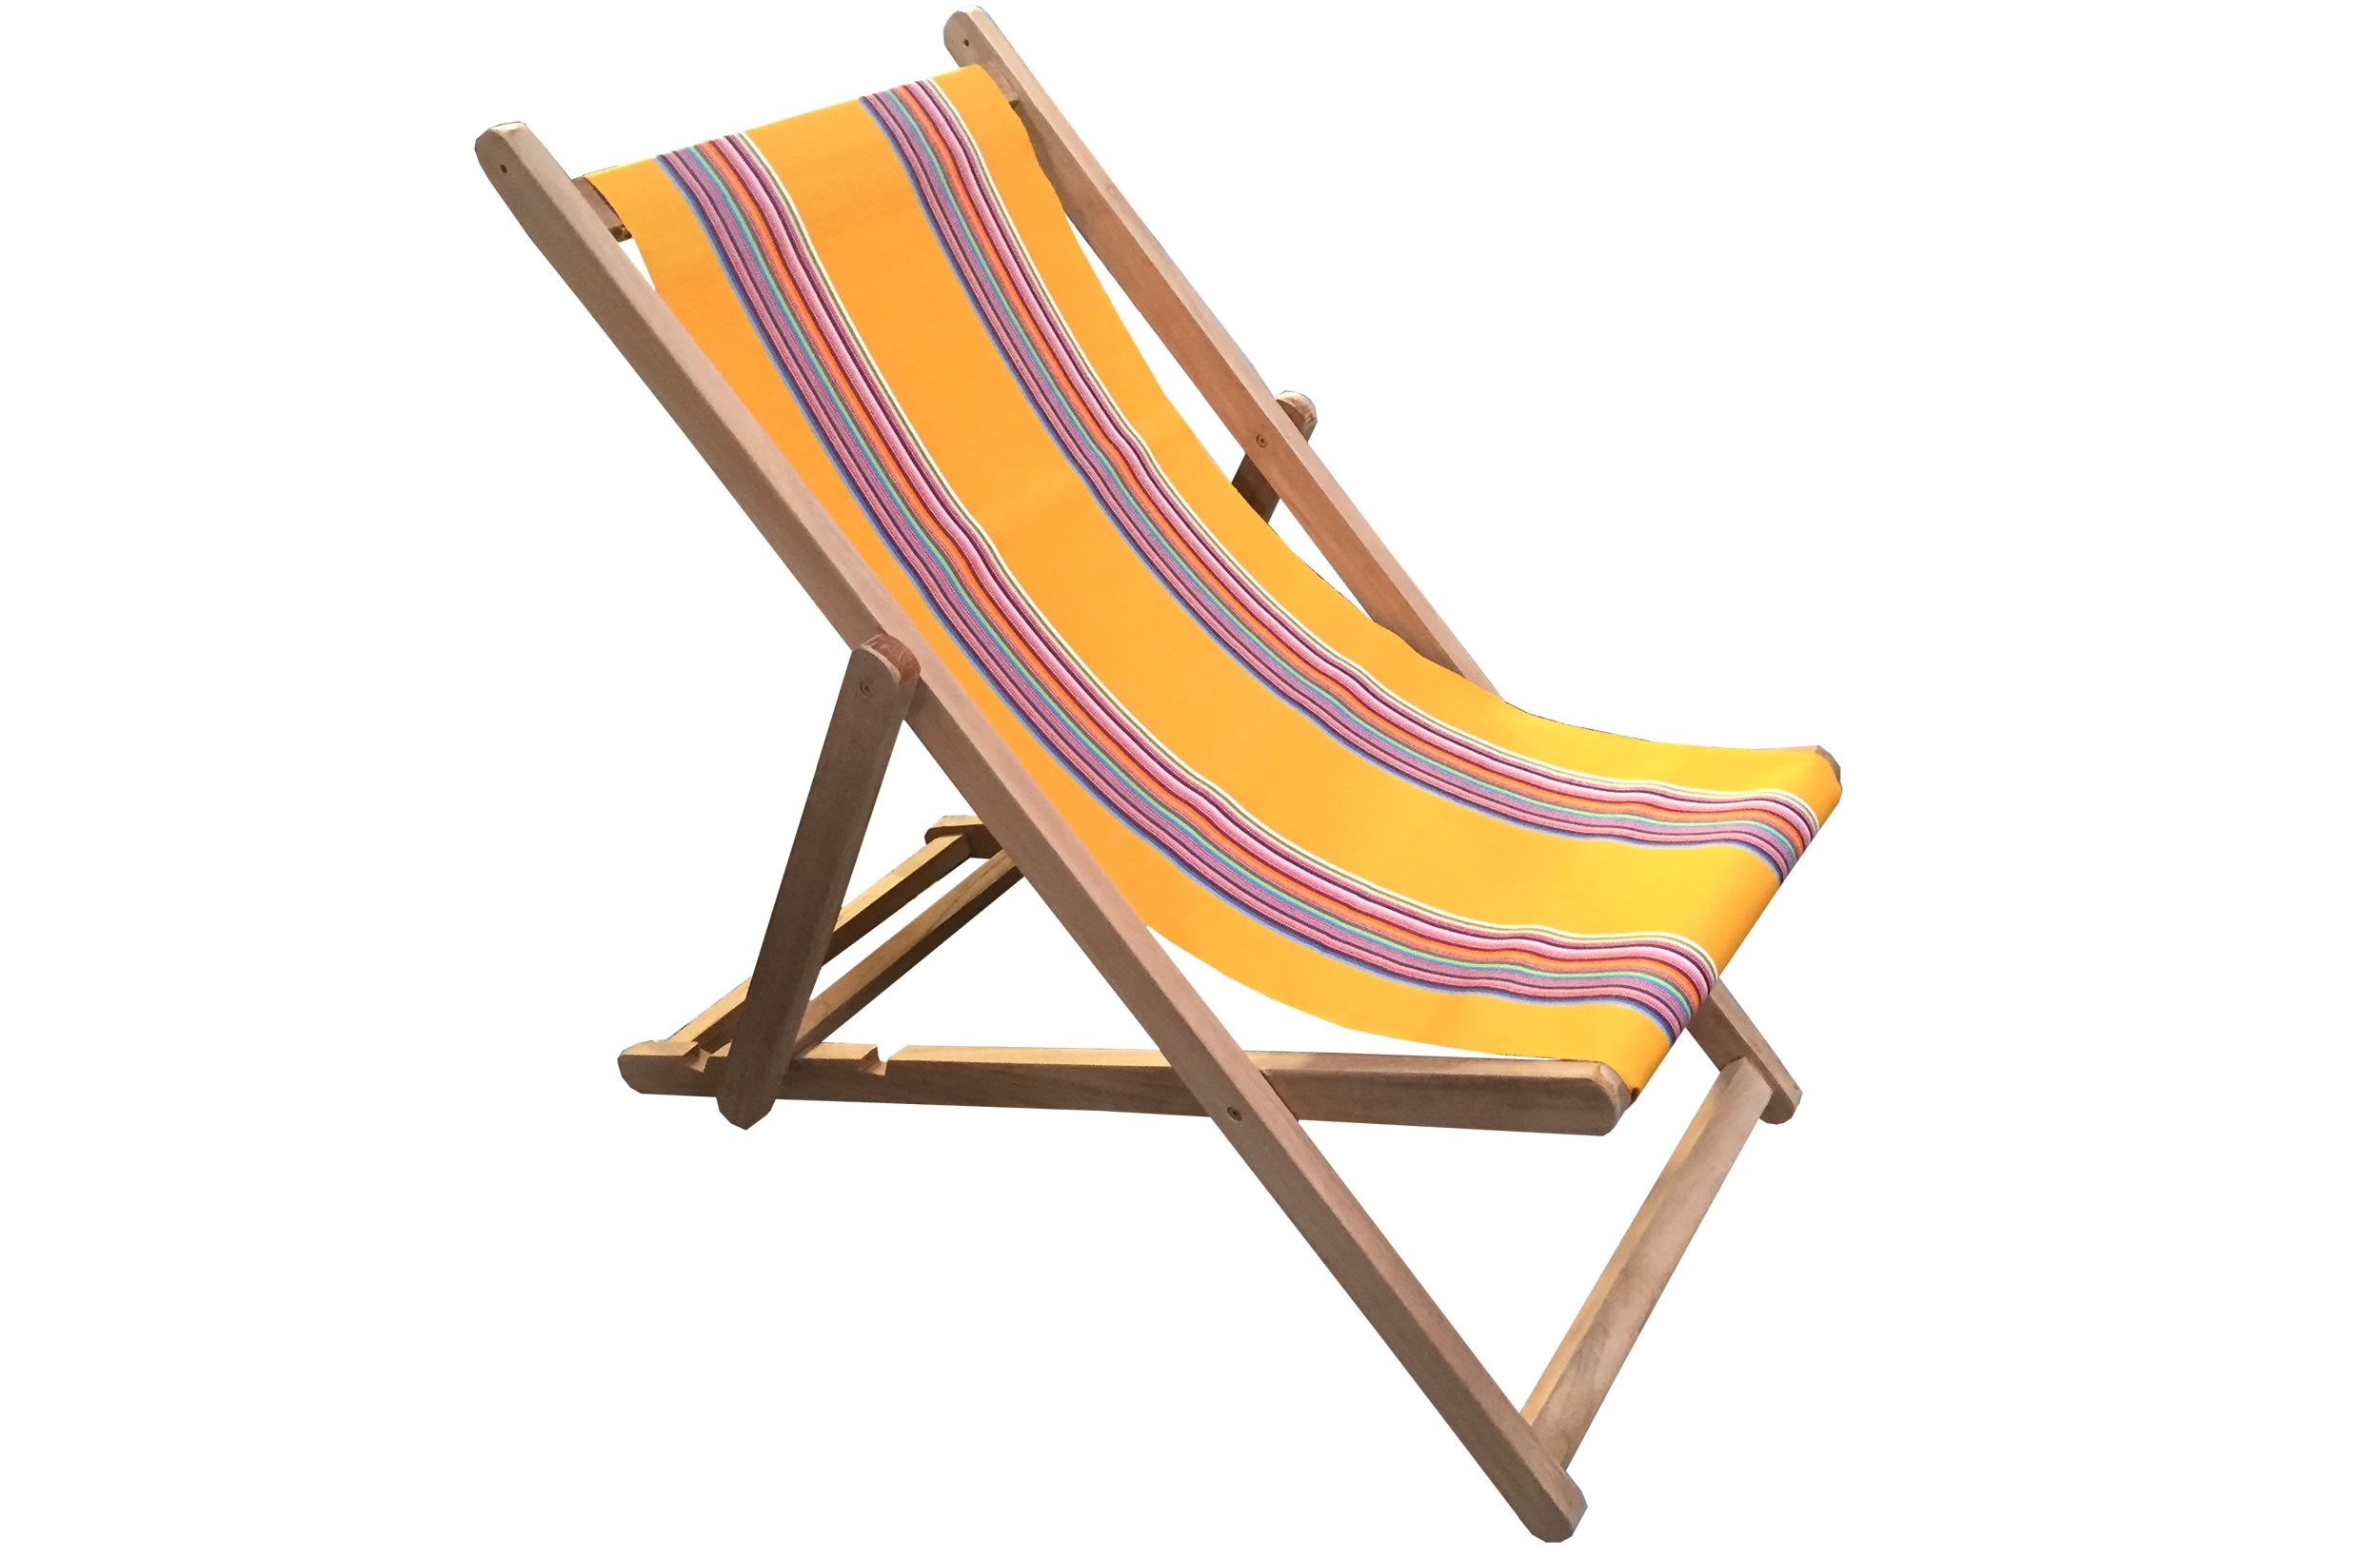 Yellow Deckchairs | Wooden Folding Deckchairs Butterfly Stripe